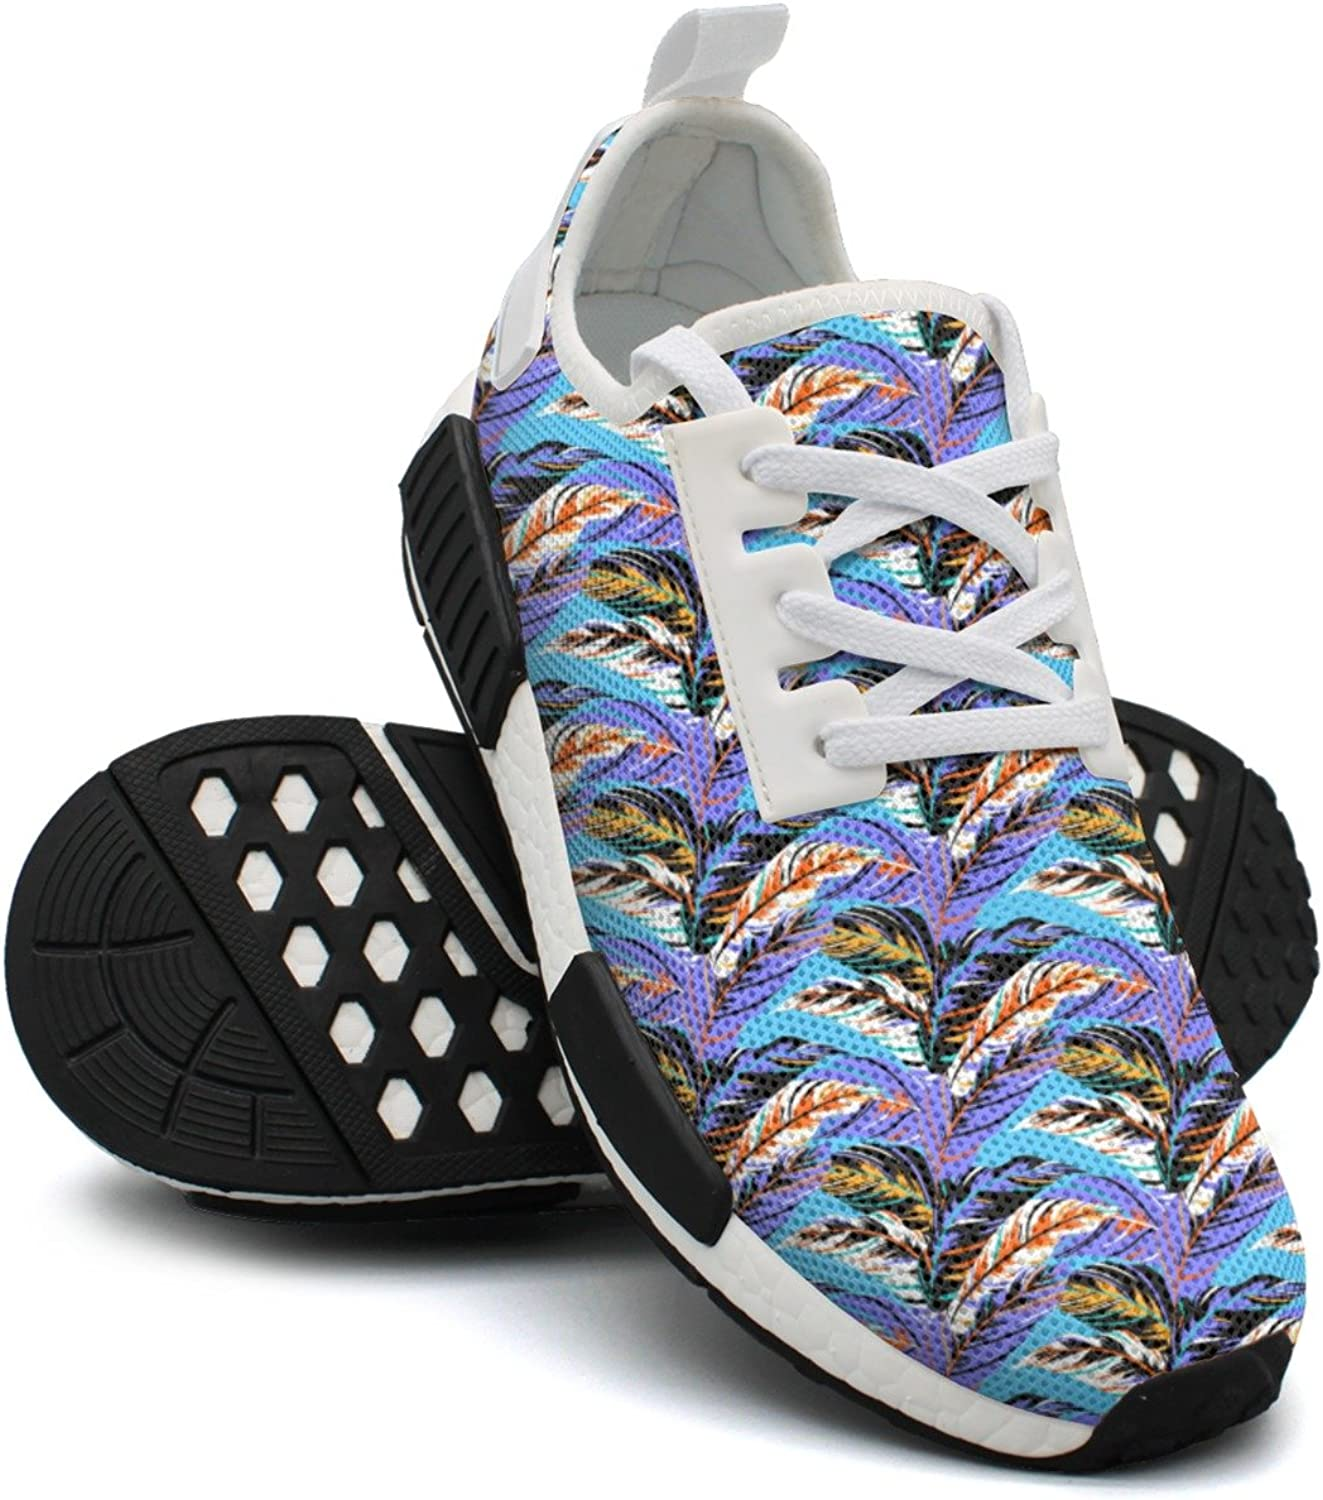 Autumn Pattern Breathable Running shoes Womens Nmd Gym Running shoes